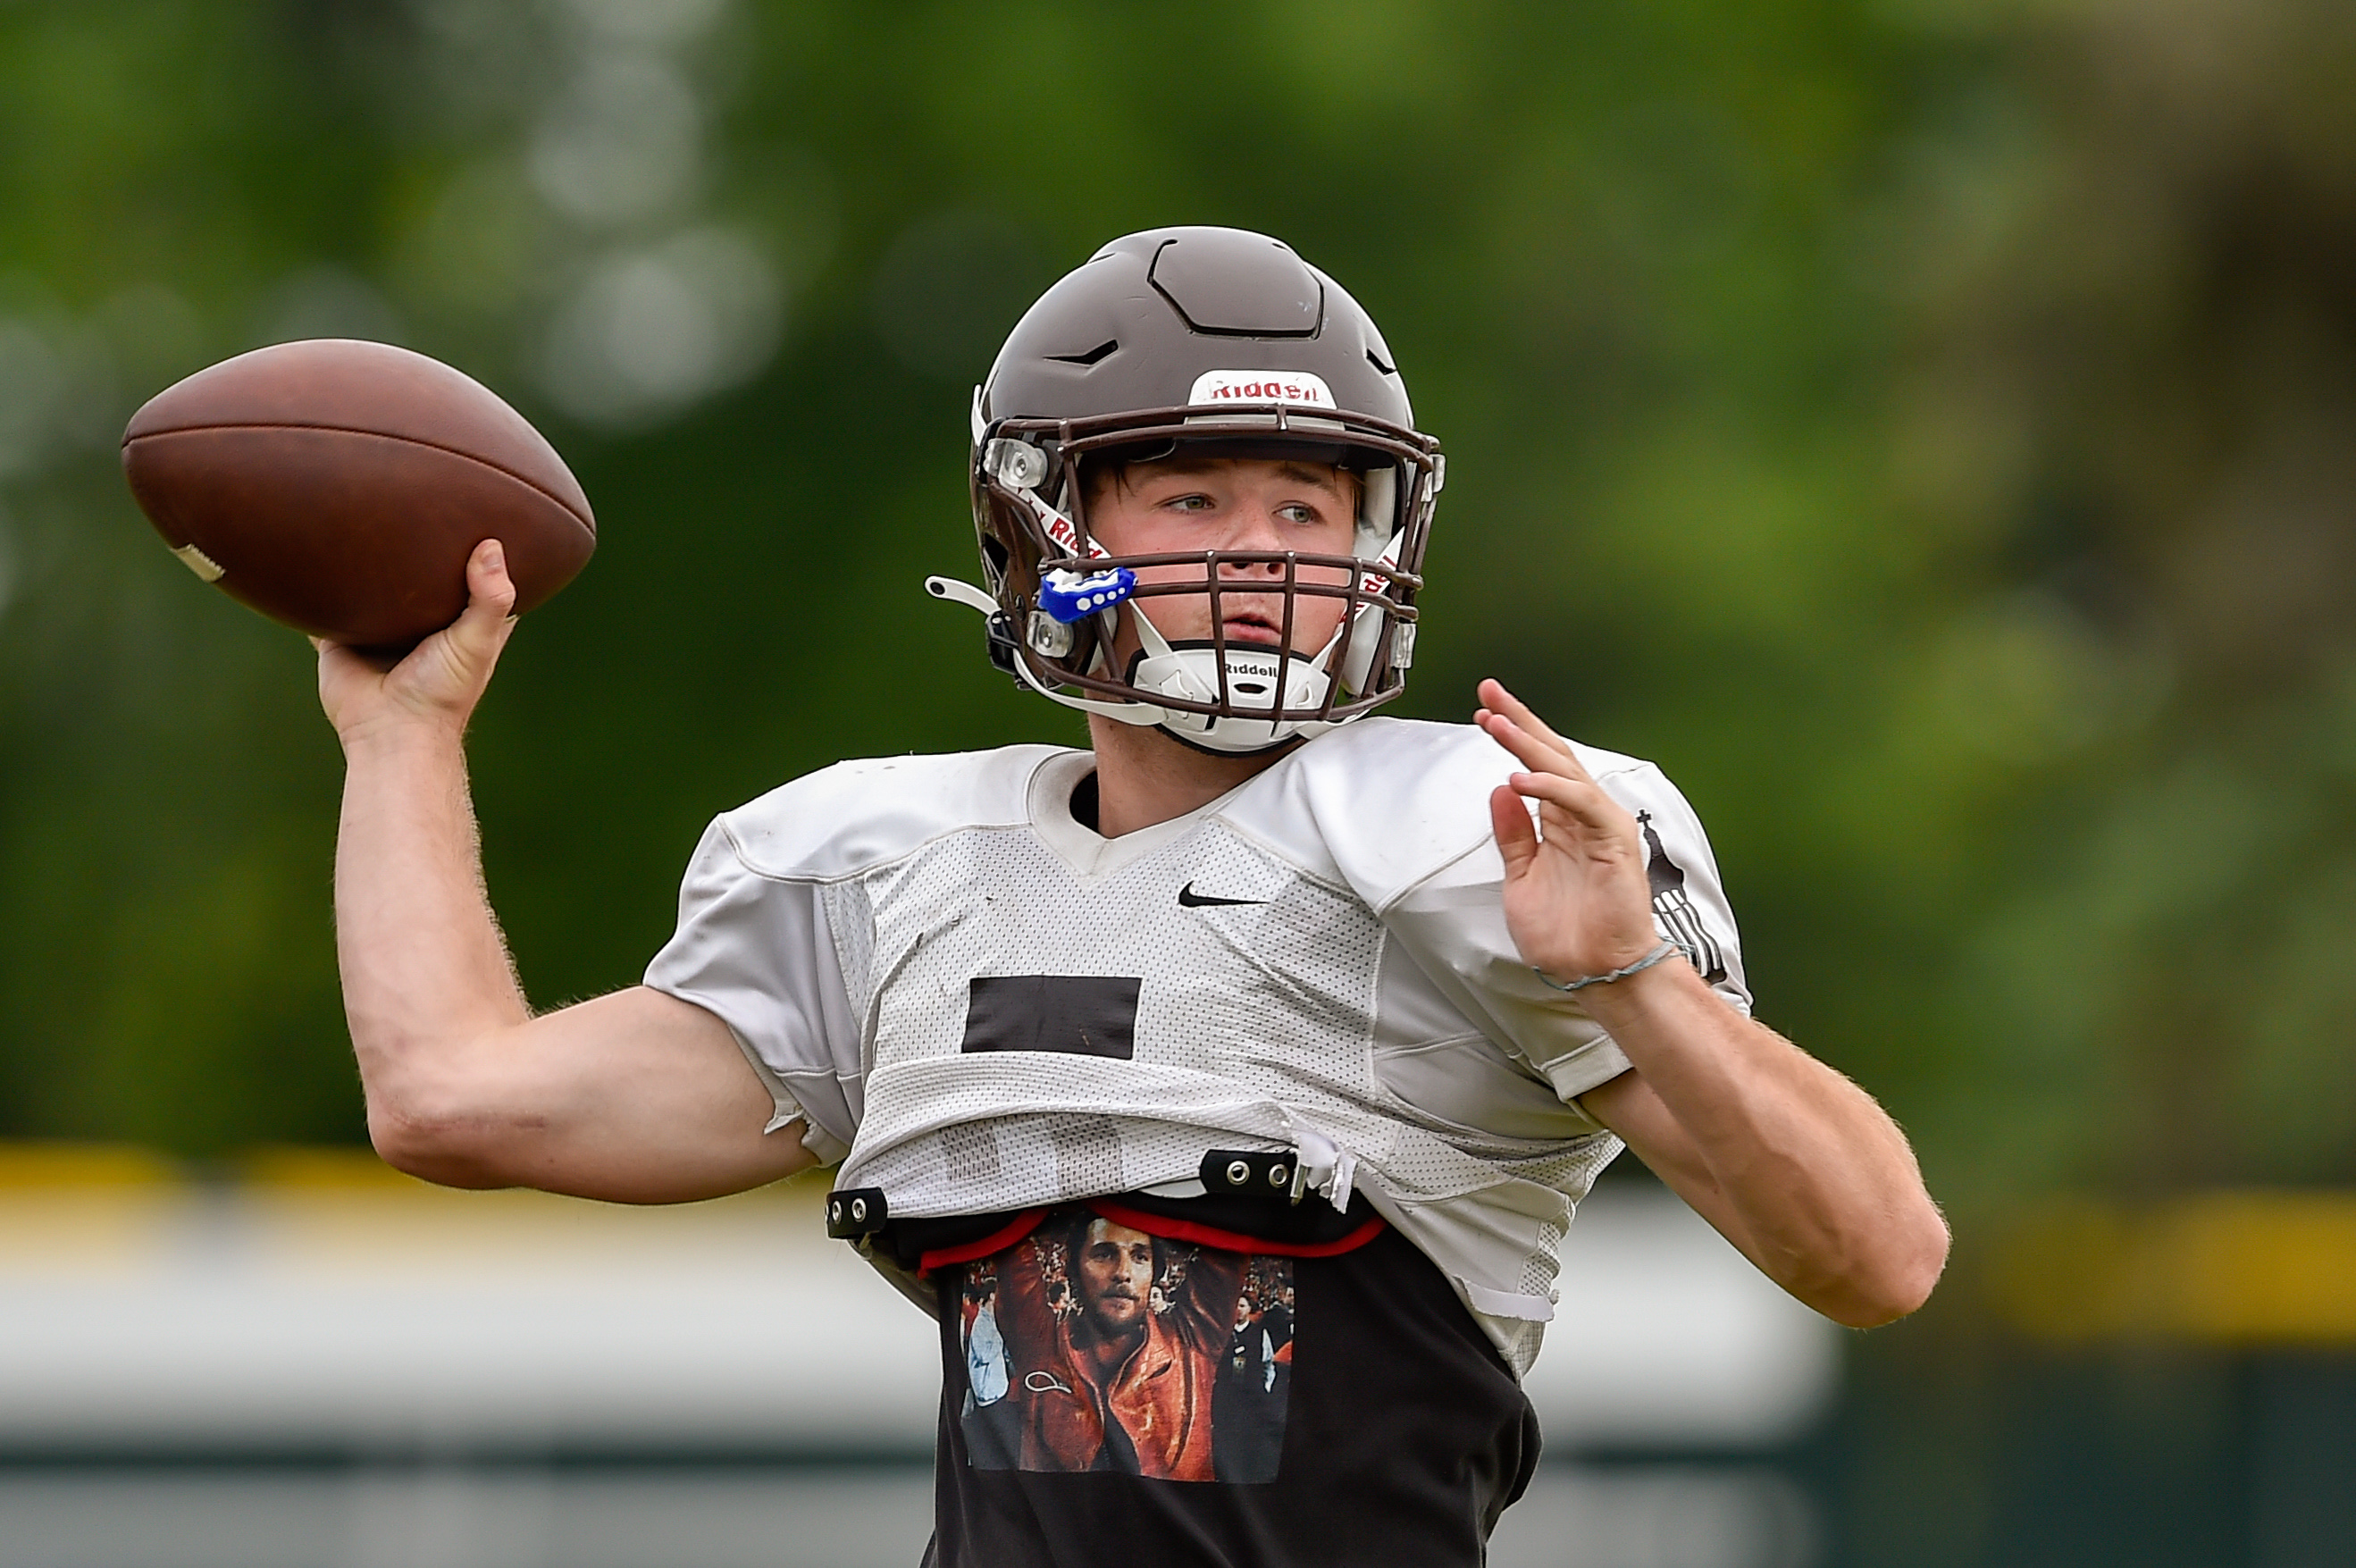 Joliet Catholic's Aidan Voss throws the ball during practice.